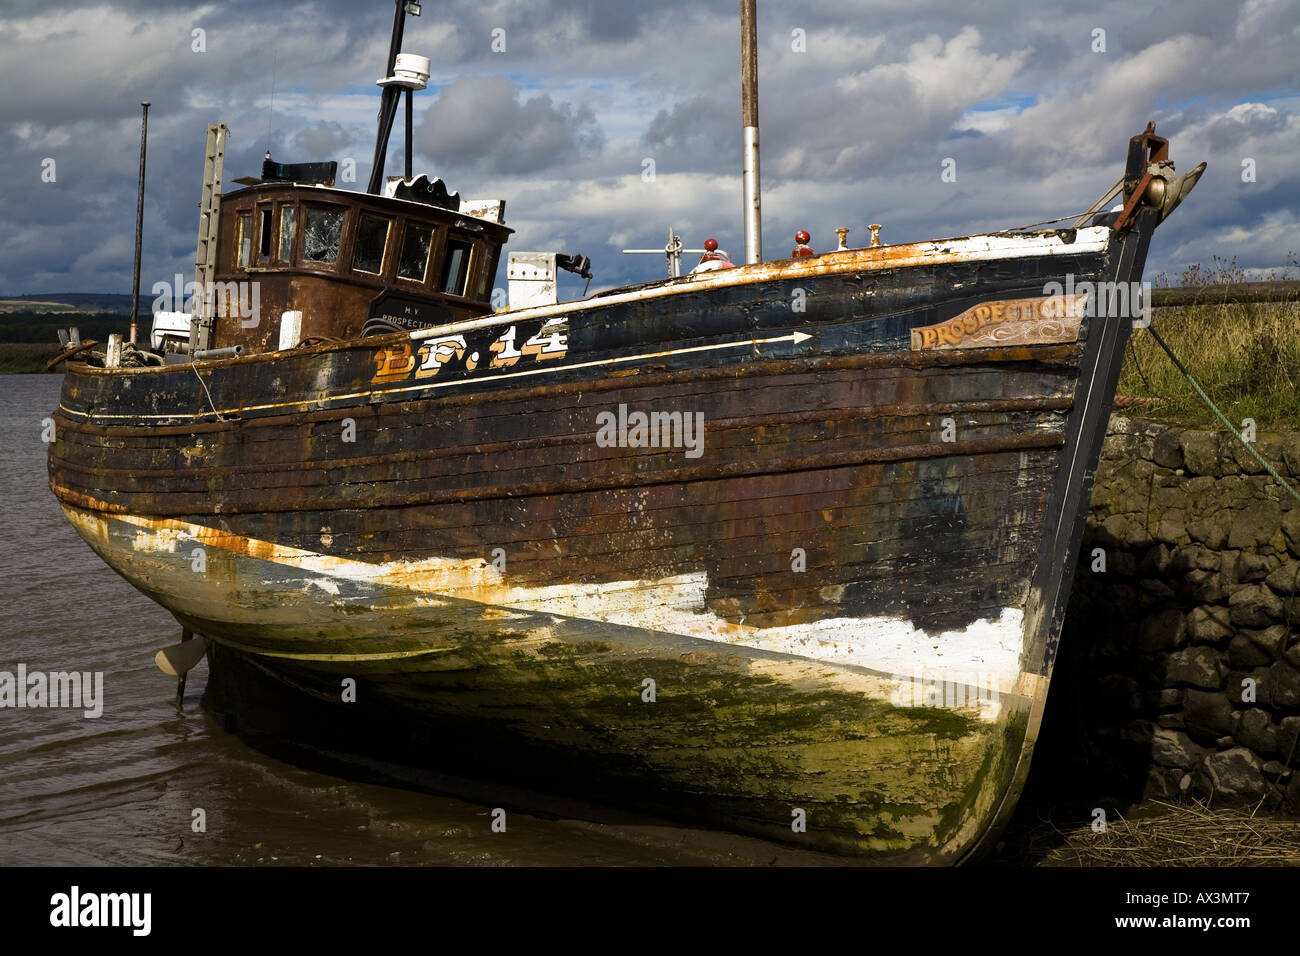 Derelict Old Wooden Fishing Boat Fife Scotland August 2006 Stock Photo ...